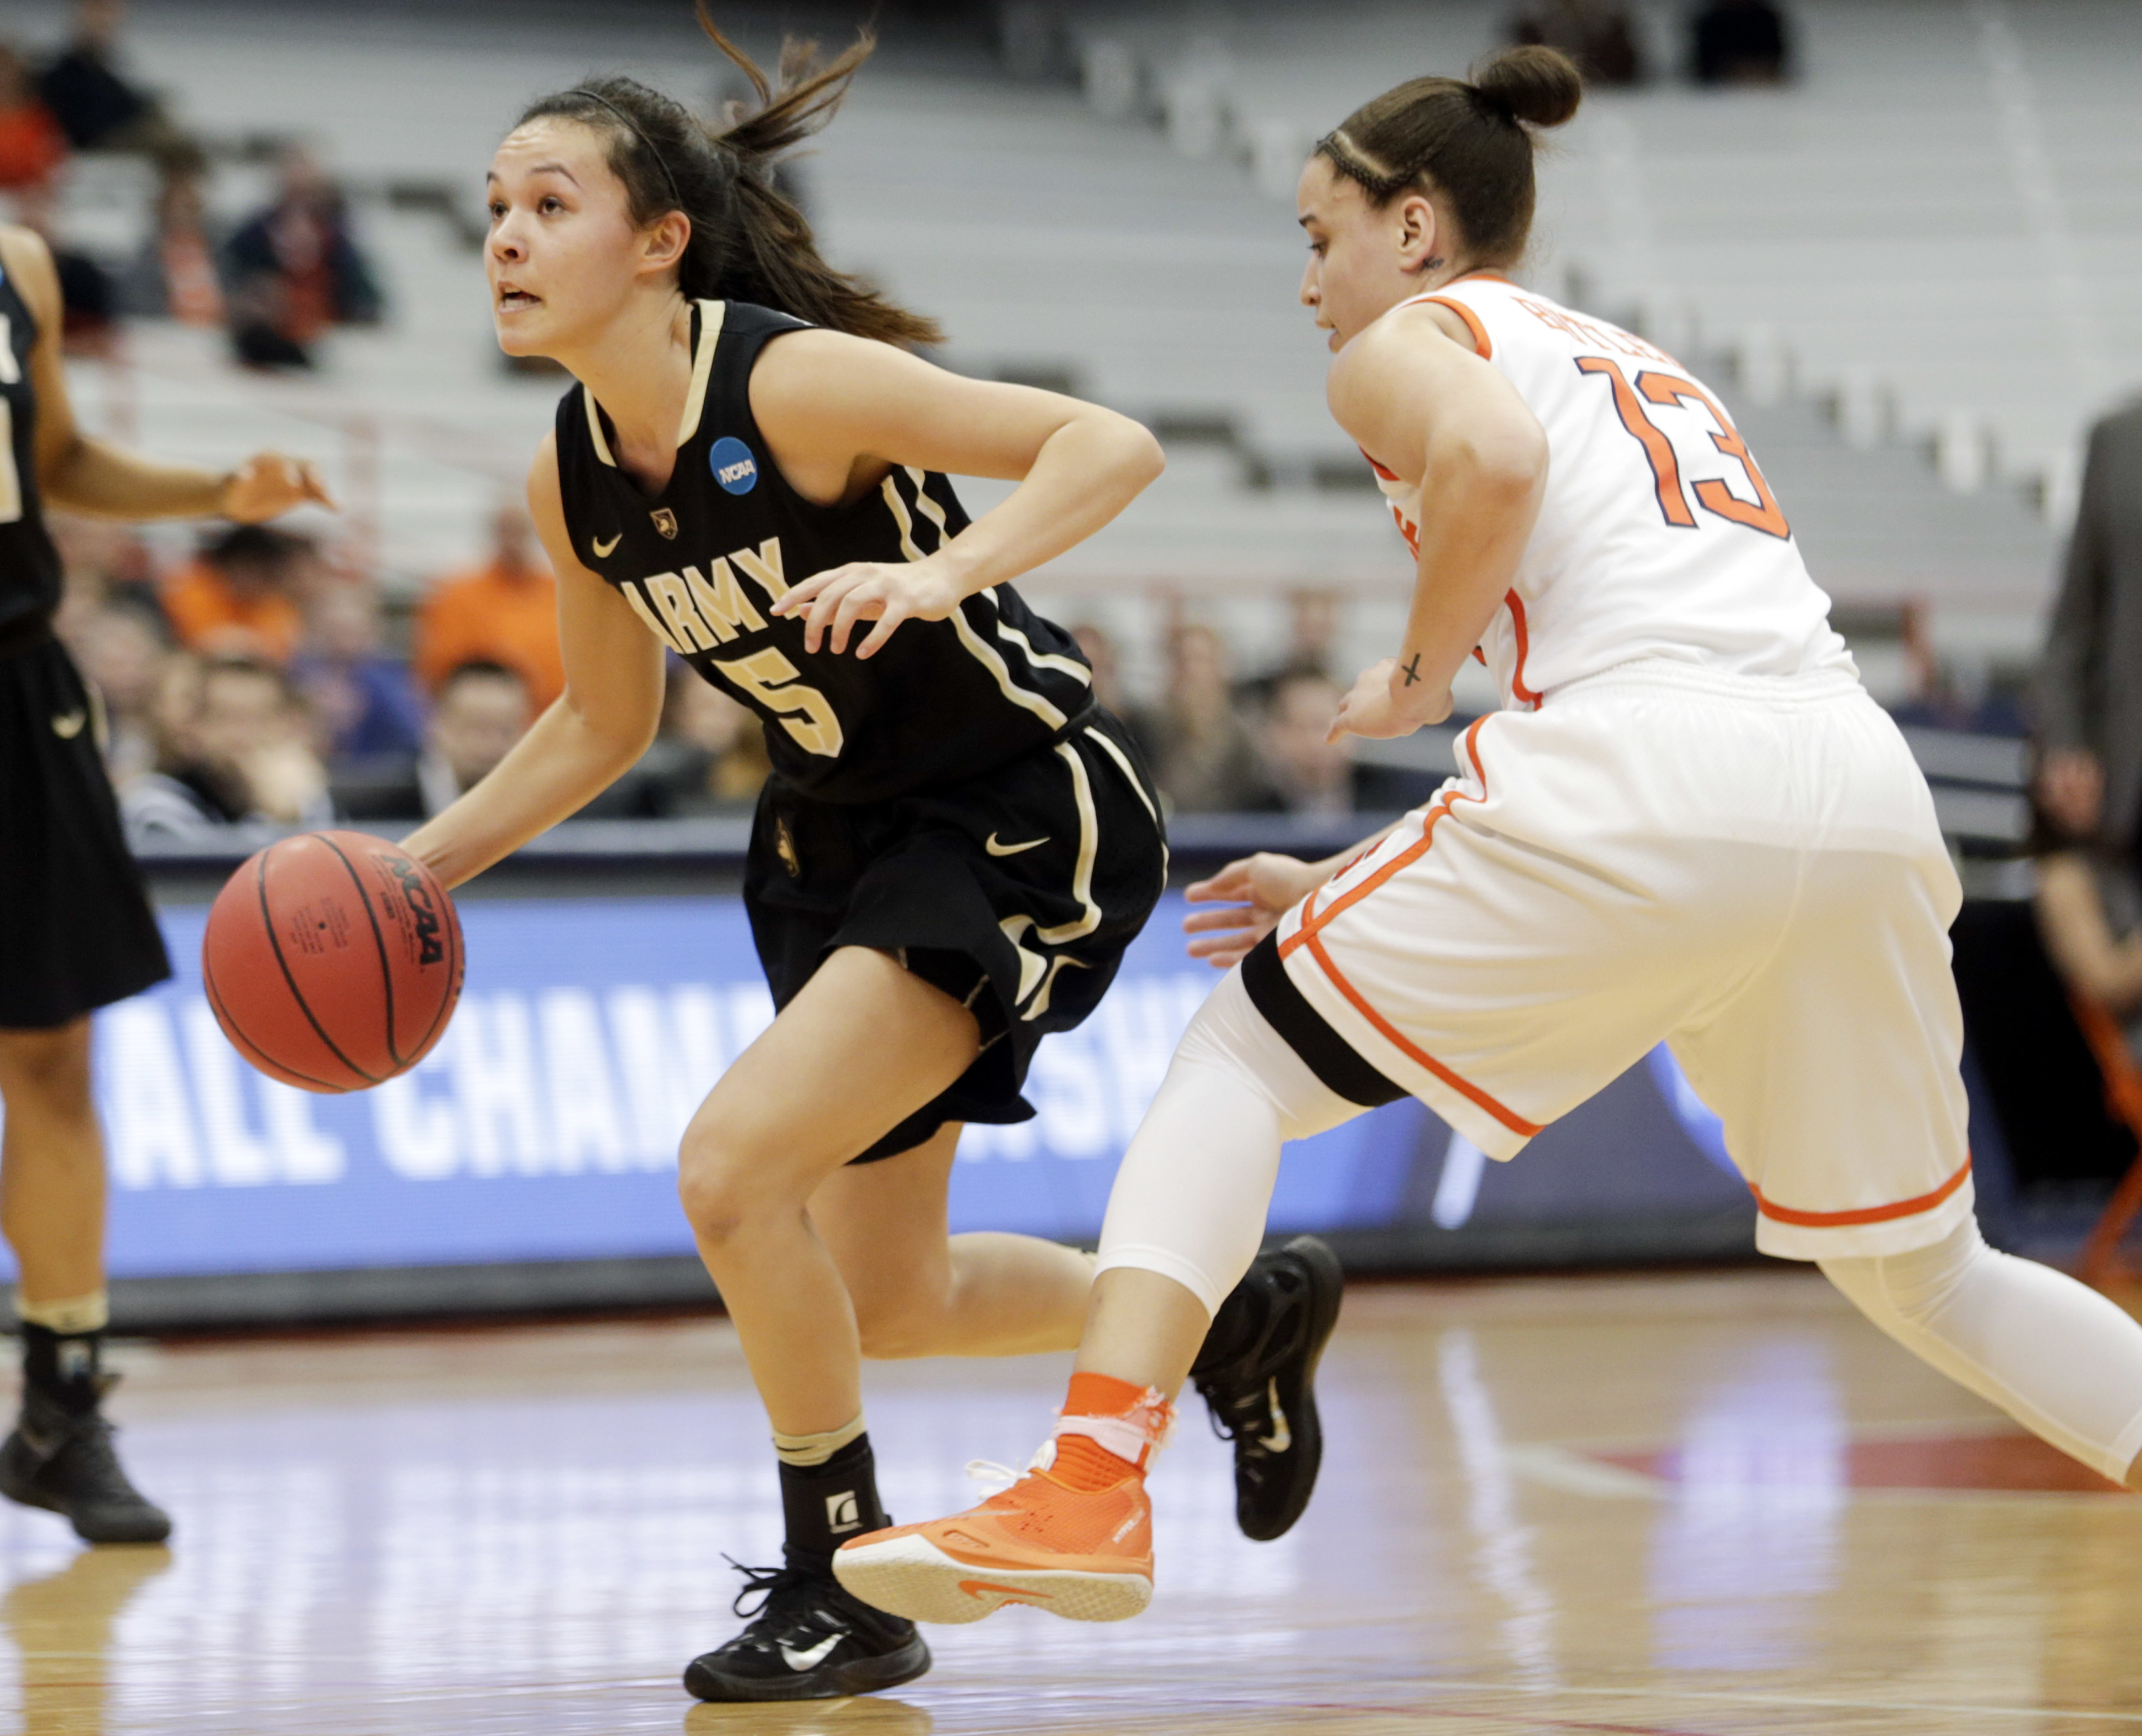 Army guard Kelsey Minato (5) drives past Syracuse guard Brianna Butler (13) during the first half of a first-round women's college basketball game in the NCAA Tournament on Friday, March 18, 2016, in Syracuse, N.Y. (AP Photo/Mike Groll)